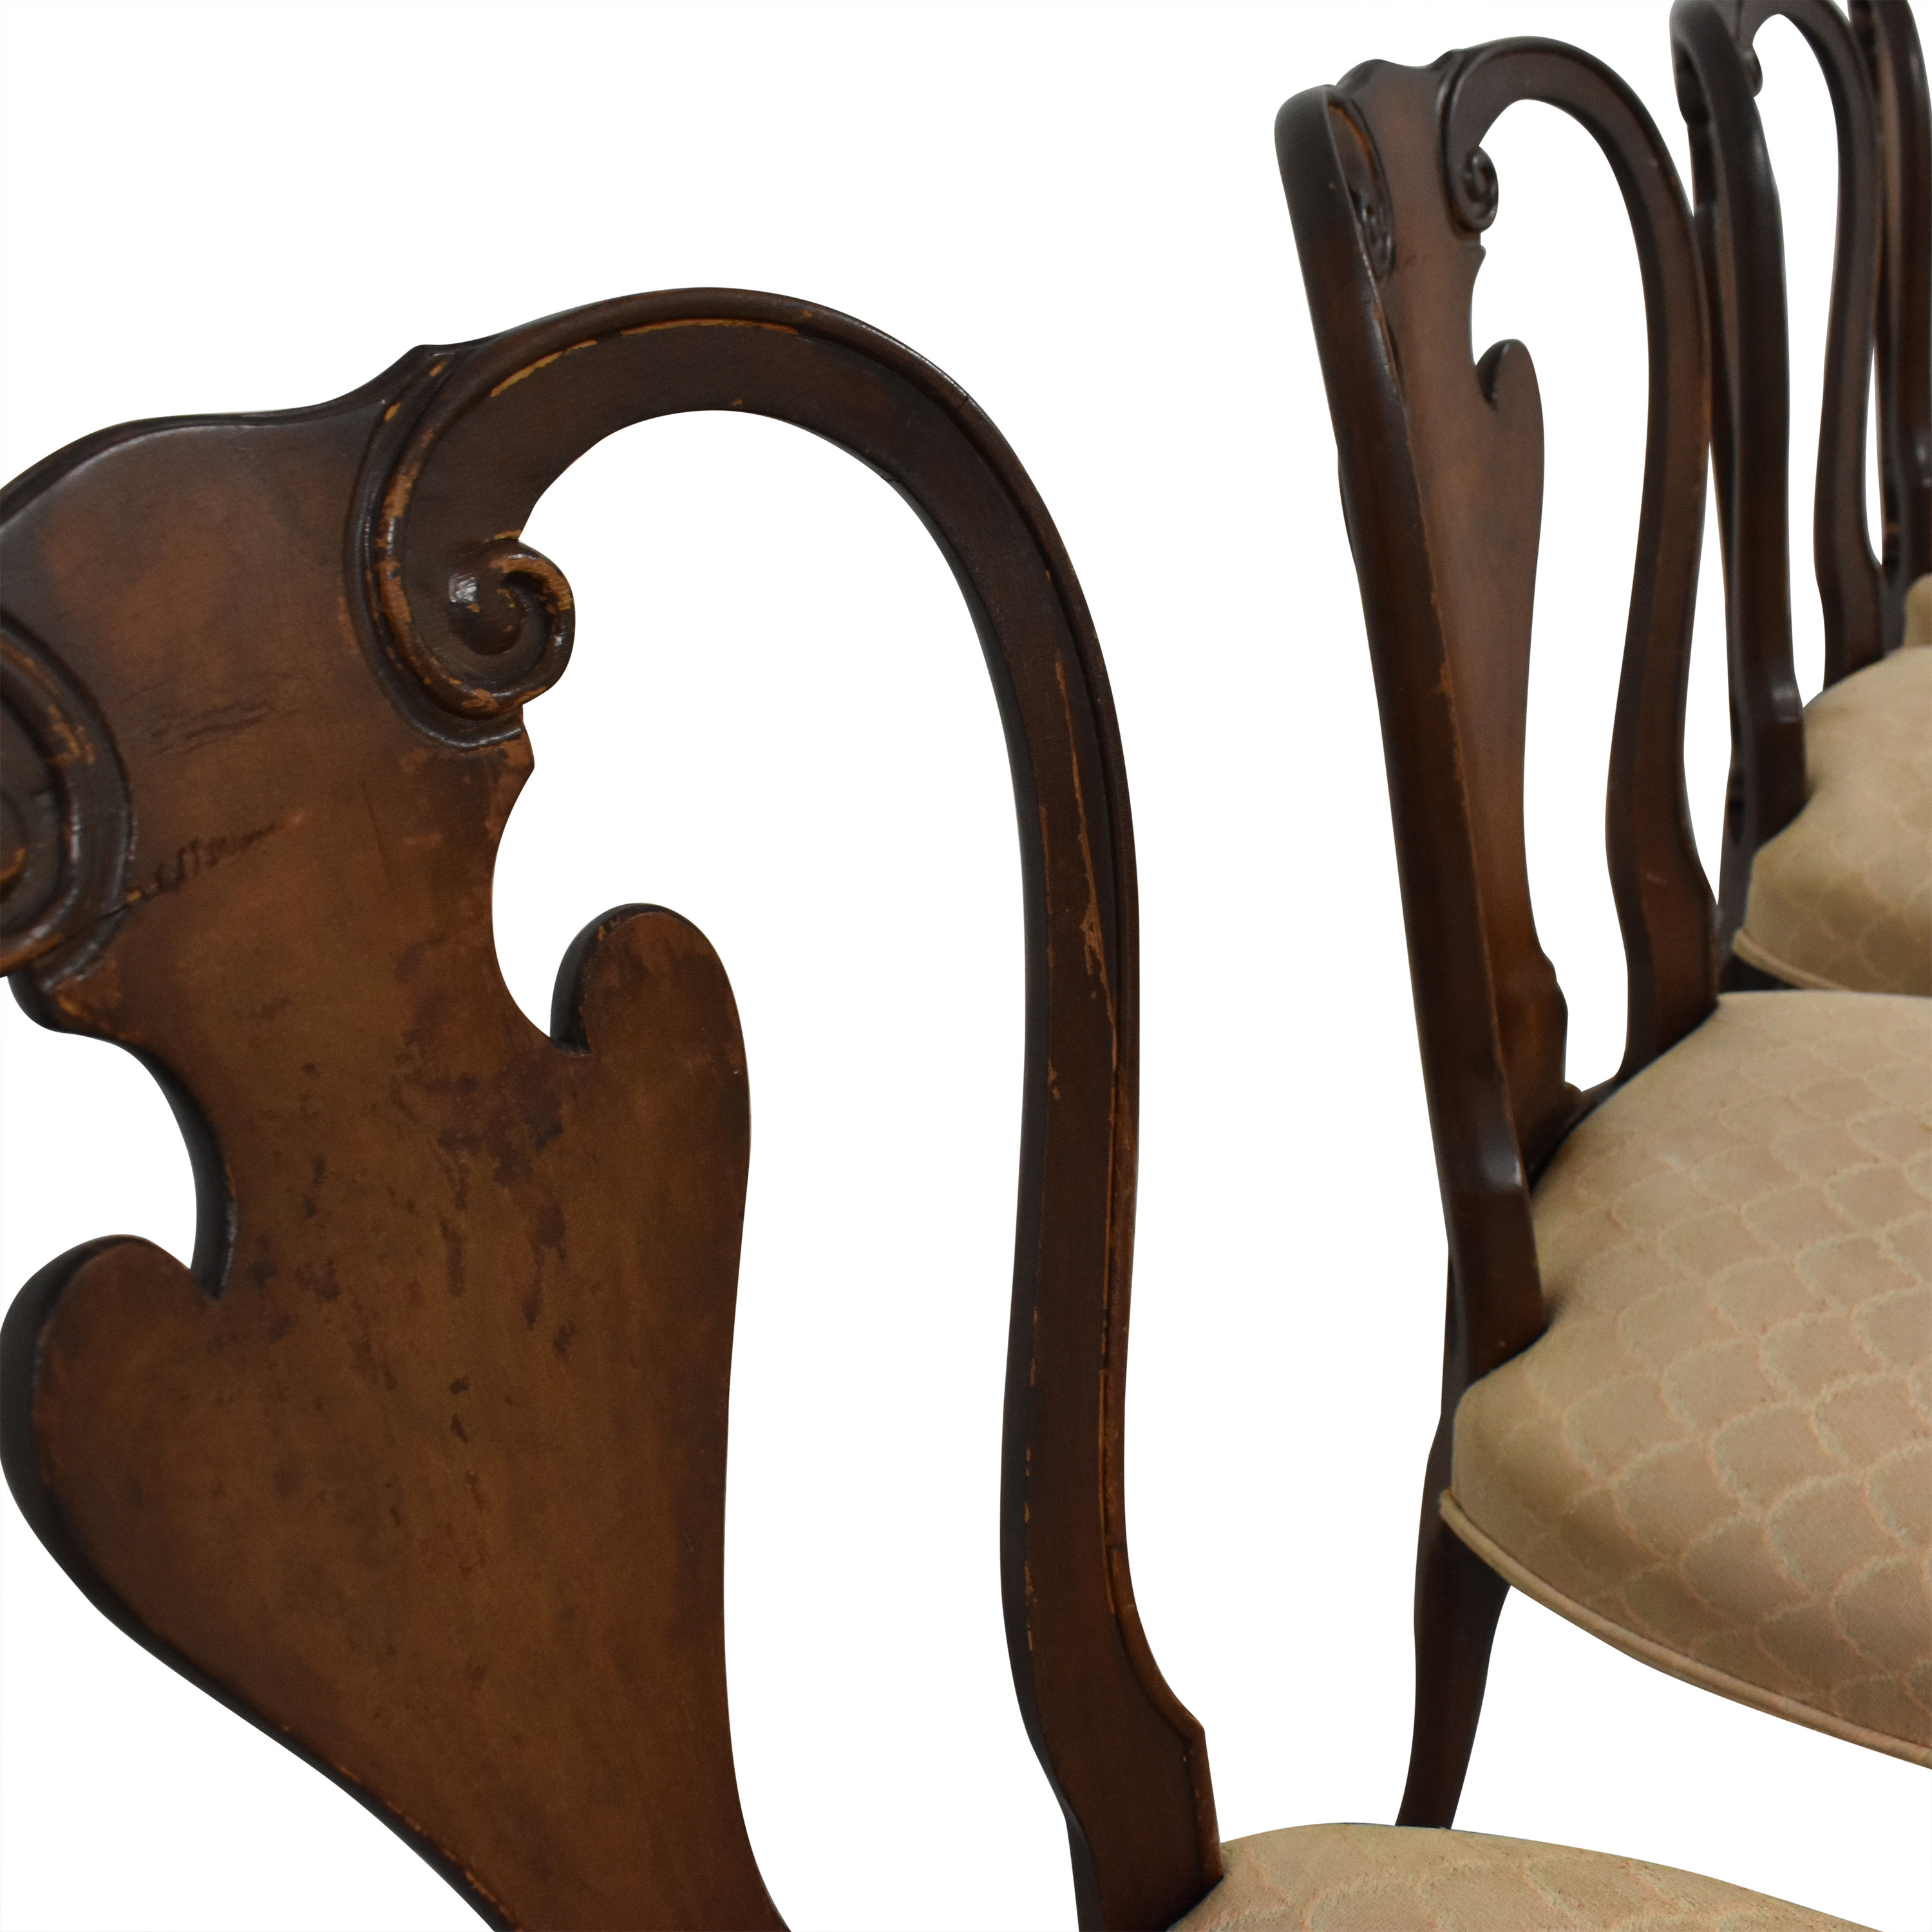 Drexel Drexel Upholstered Dining Chairs Chairs